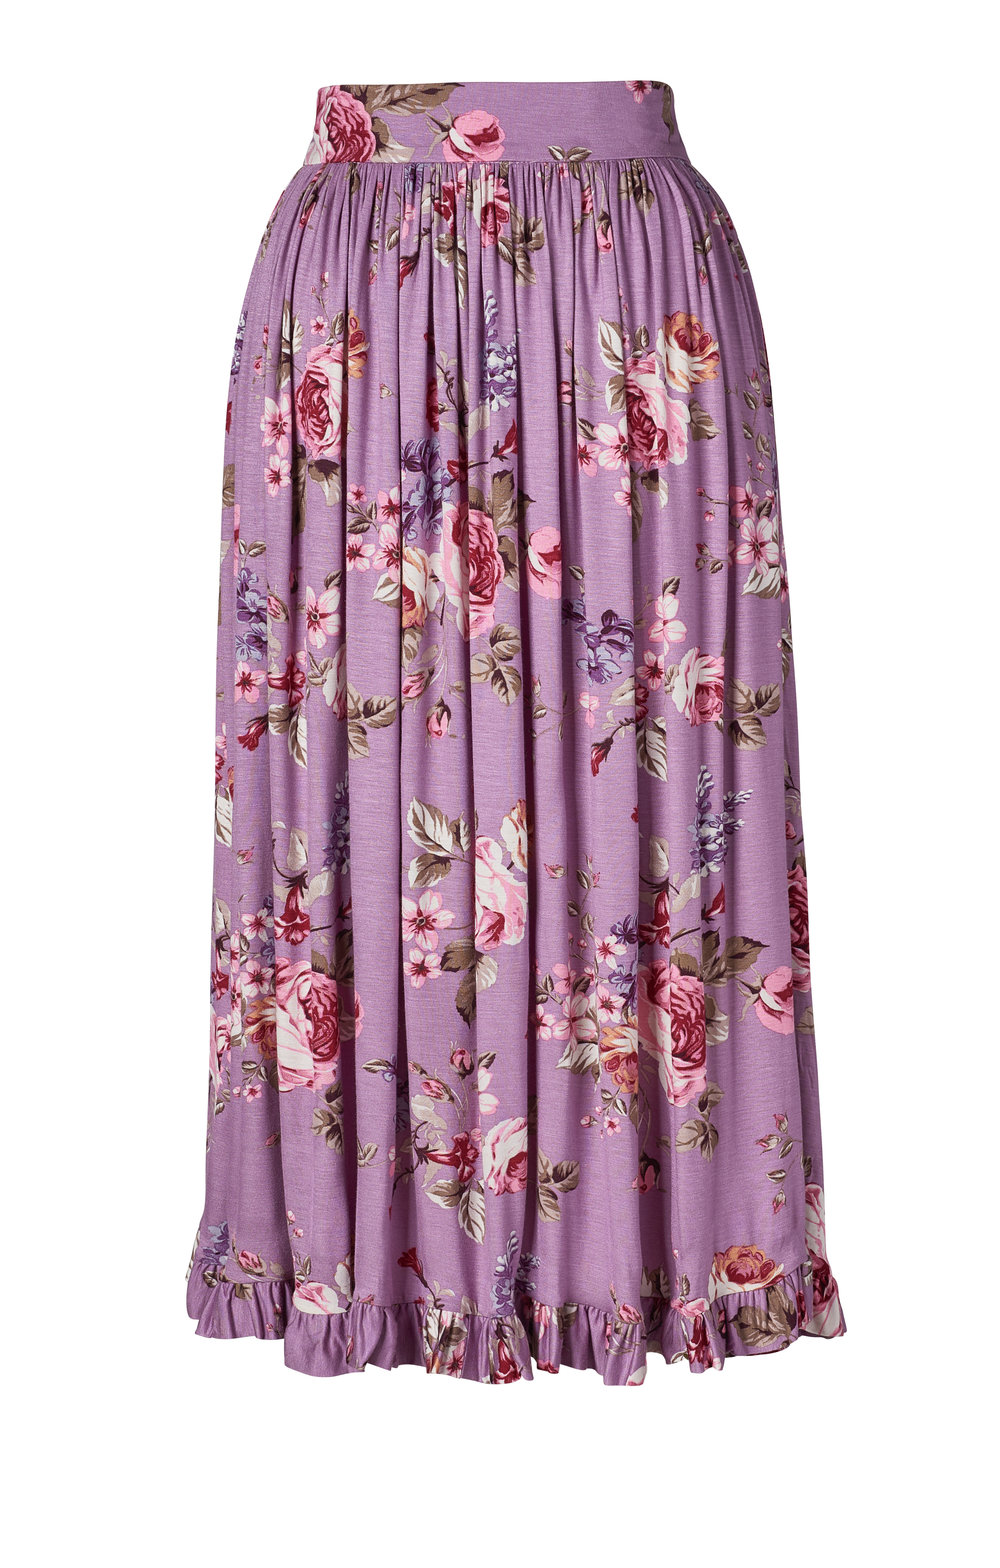 Love Finds a Way Skirt $240